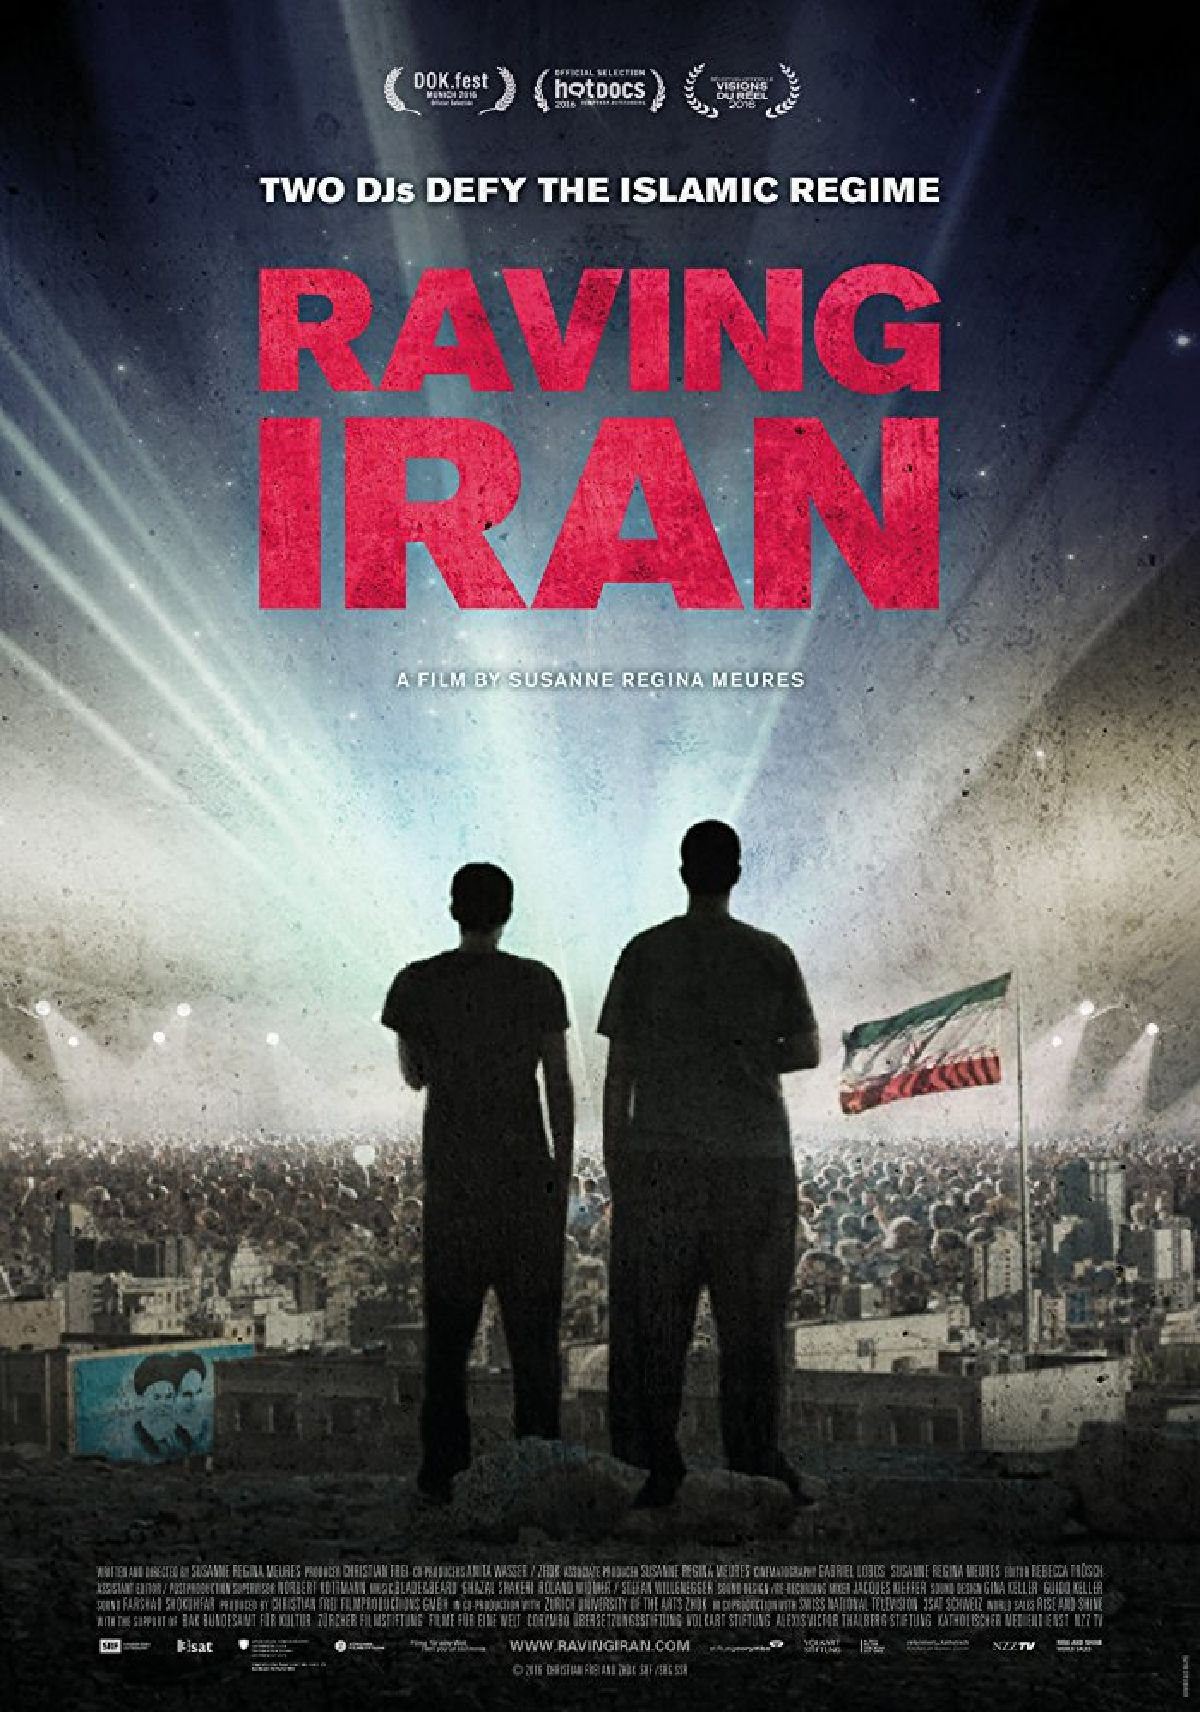 'Raving Iran' movie poster